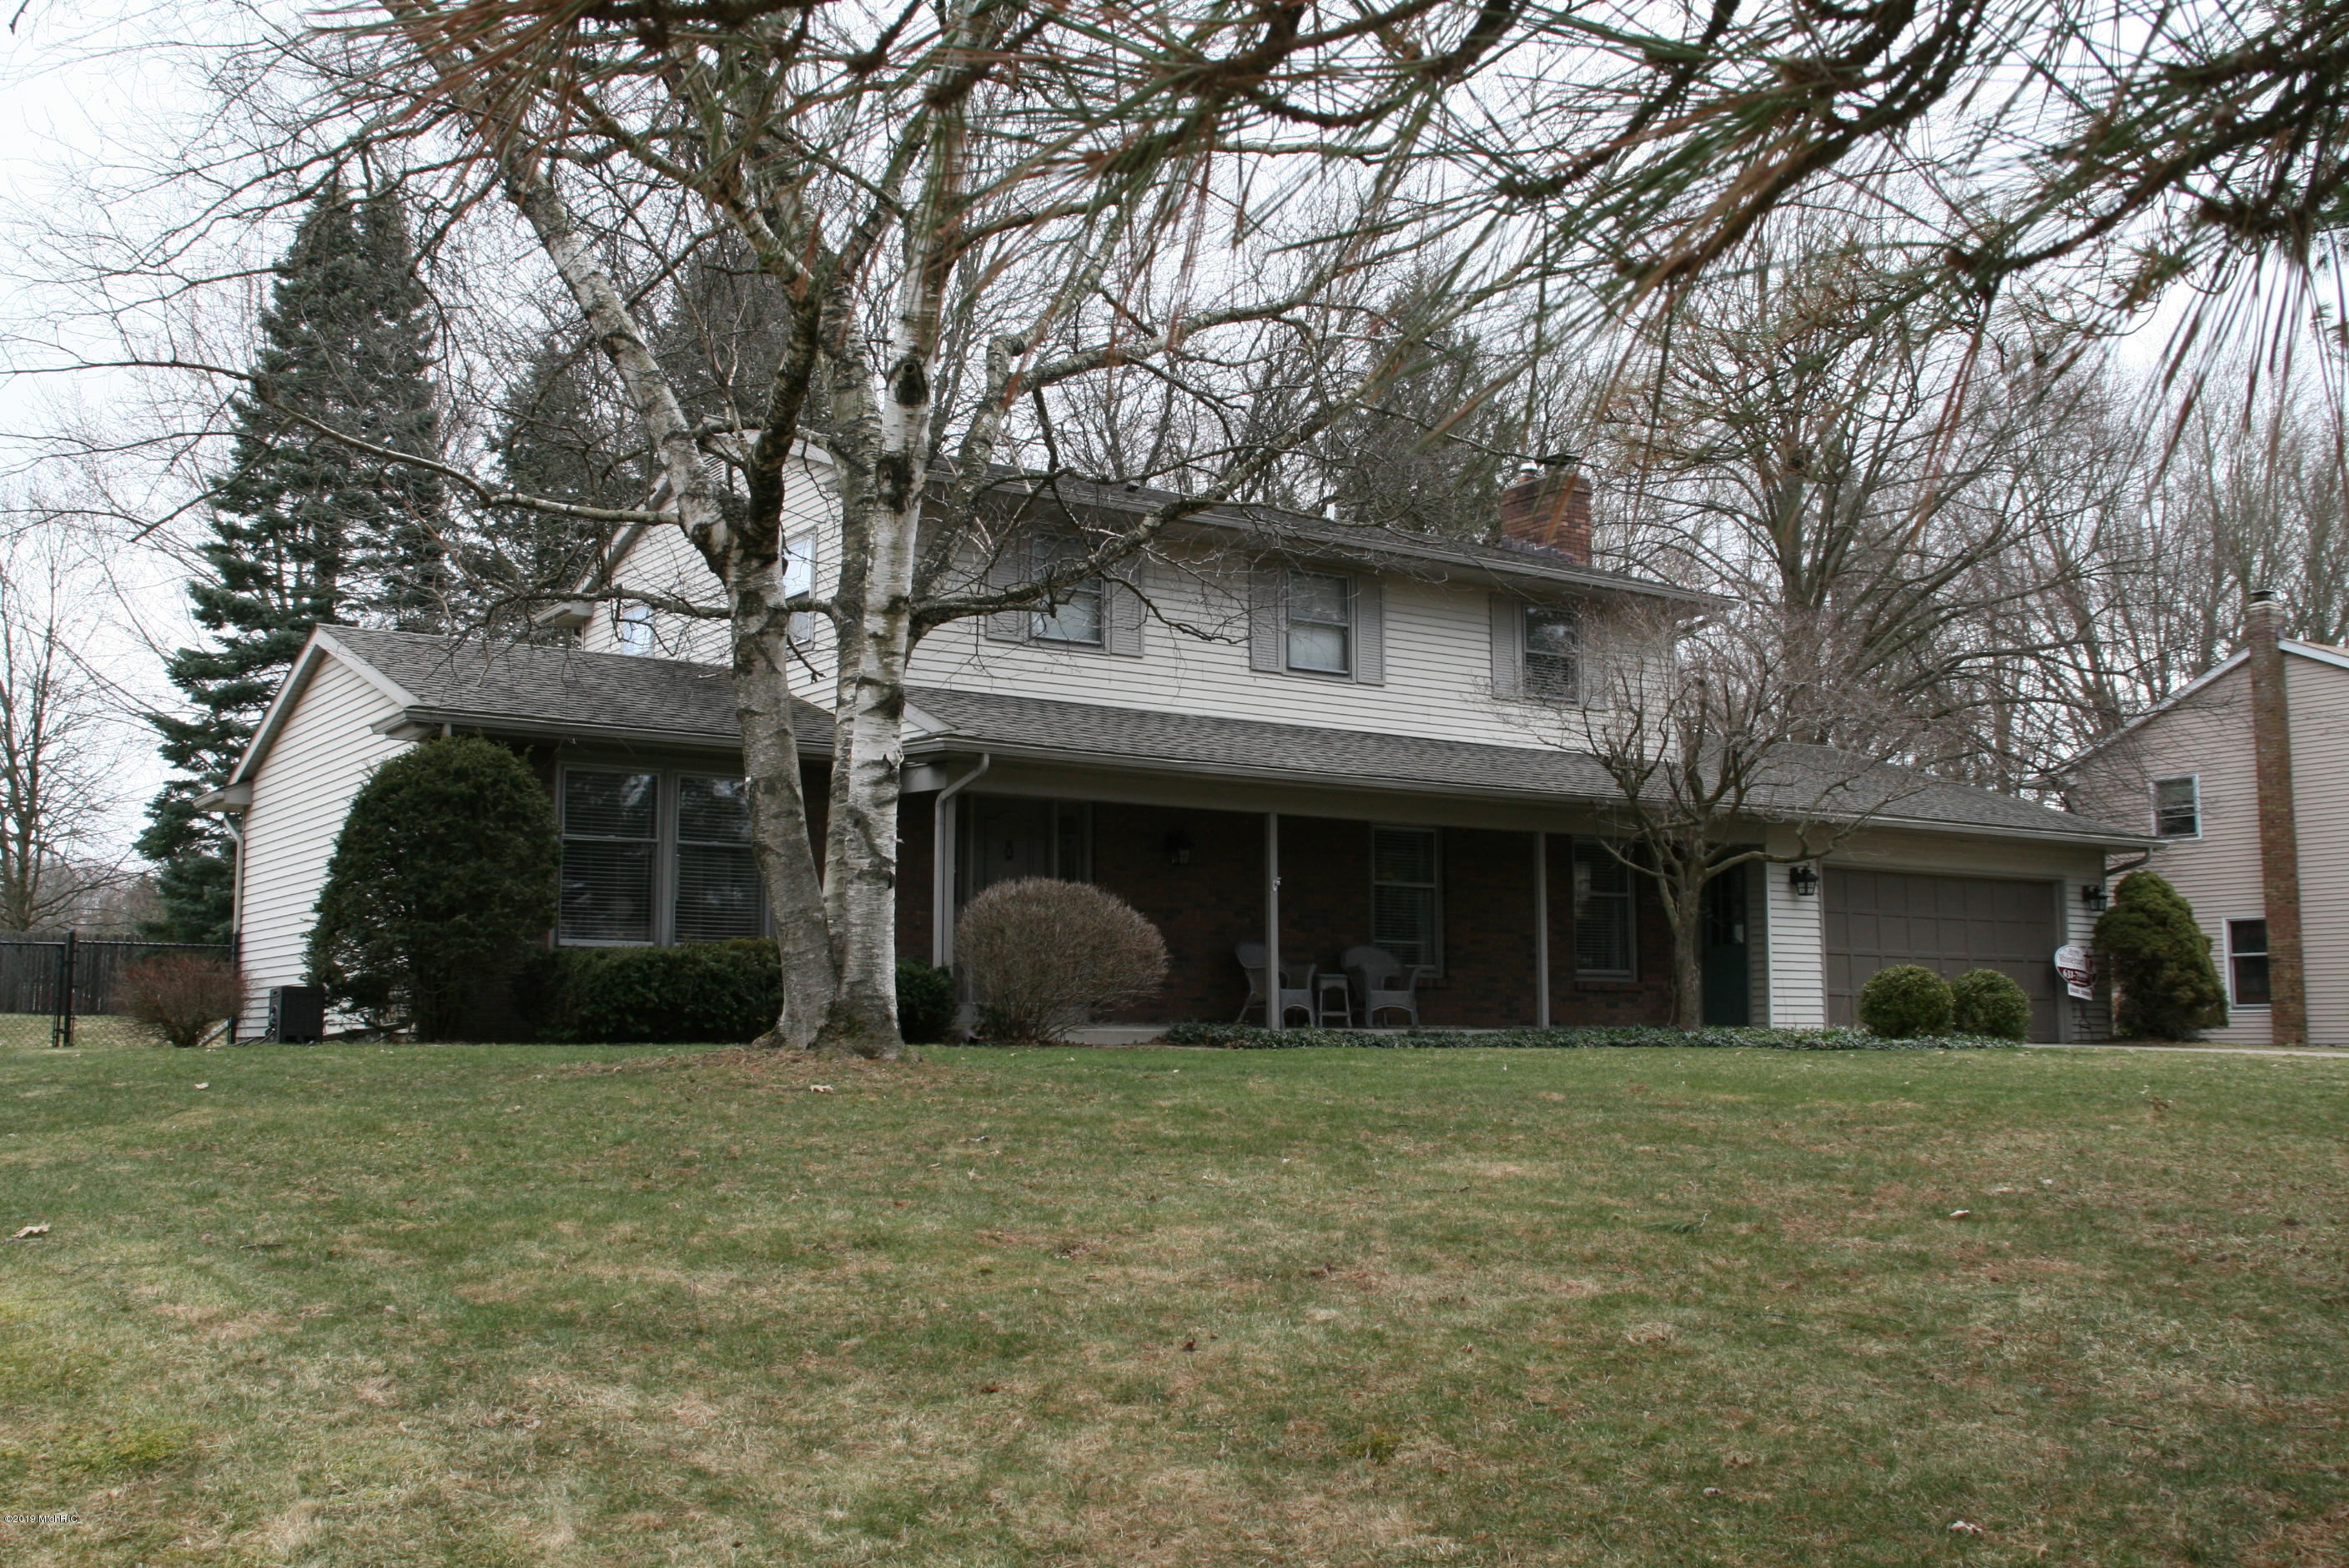 Photo for 6809 E Hickory Point Dr., Portage, MI 49024 (MLS # 19012512)